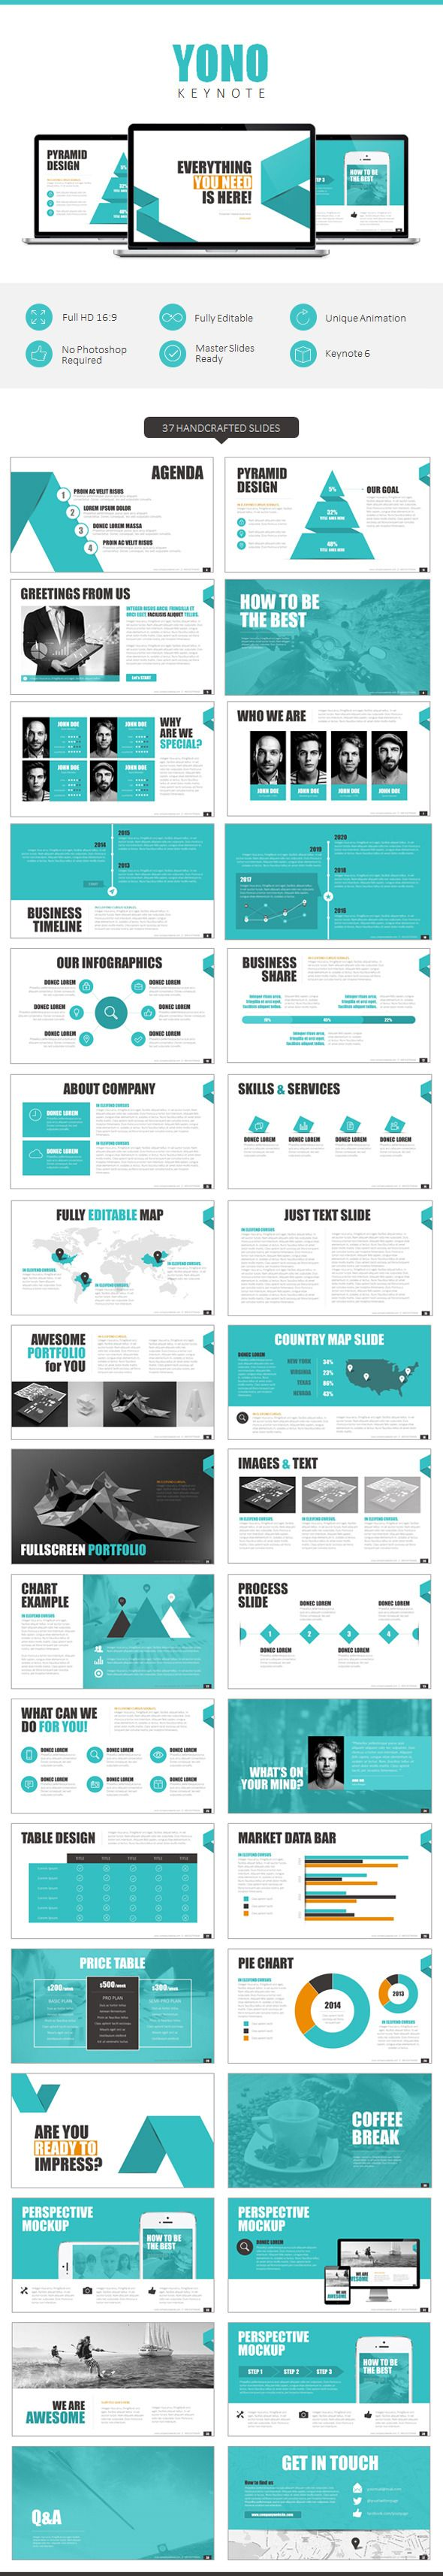 YONO Keynote Template | #keynote #keynotetemplate #keynotepresentation | Download: http://graphicriver.net/item/yono-keynote-template/8817500?ref=ksioks